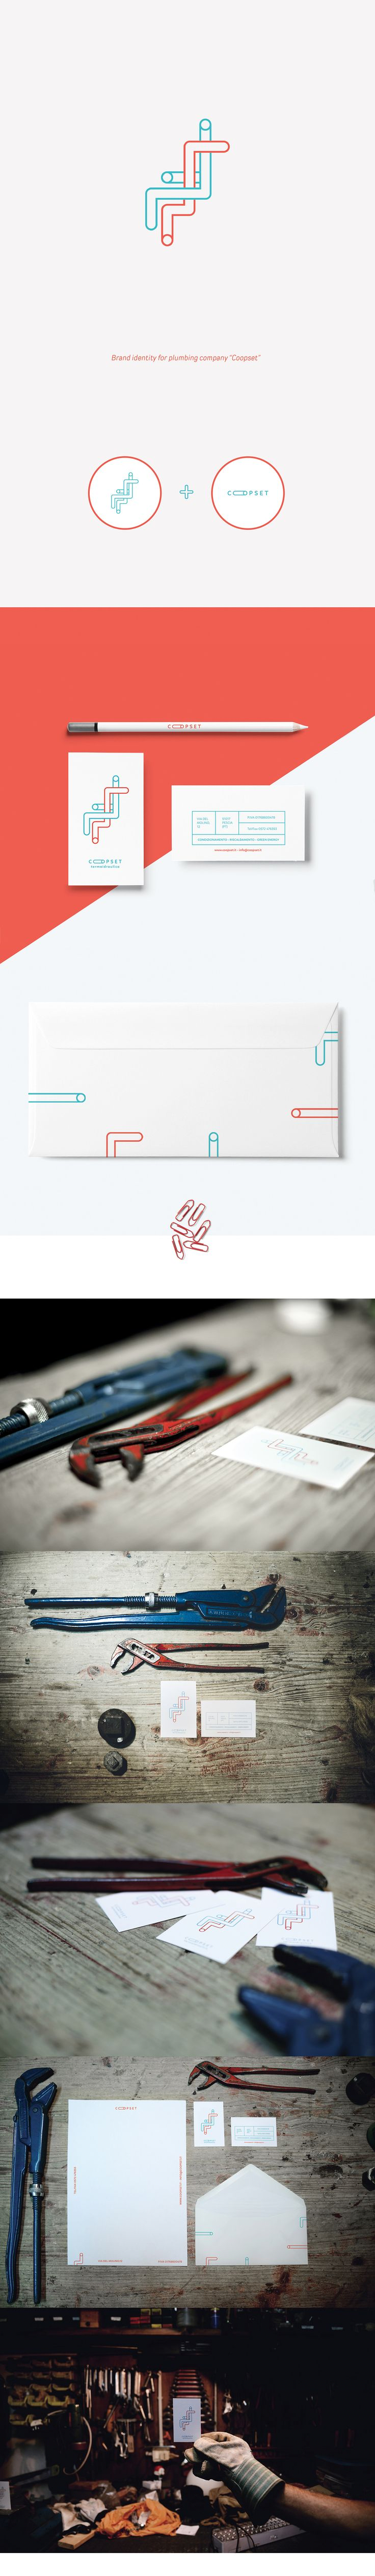 COOPSET on Behance